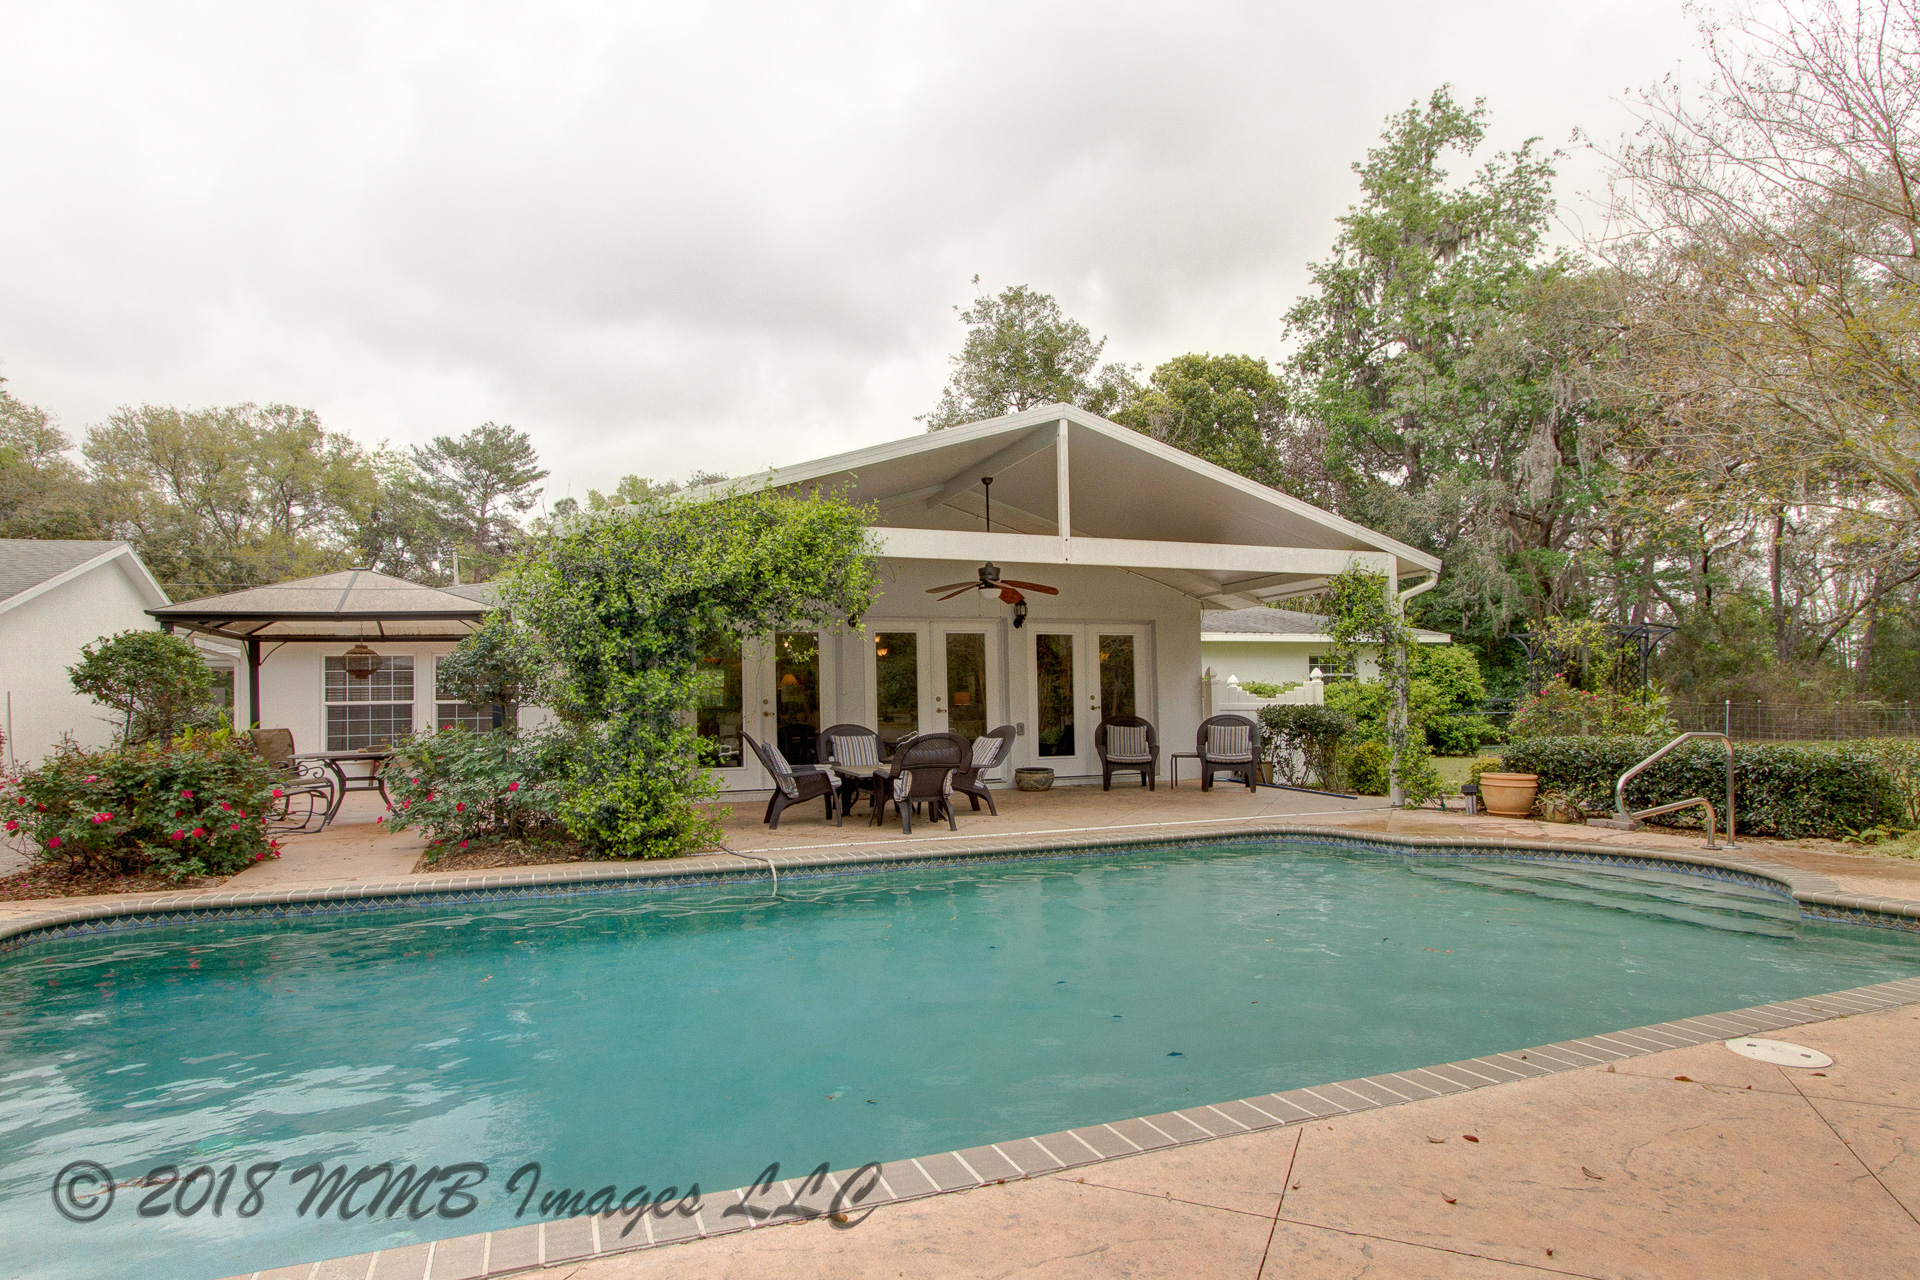 Patio and Pool of the Ranch Estate for Sale in Citrus